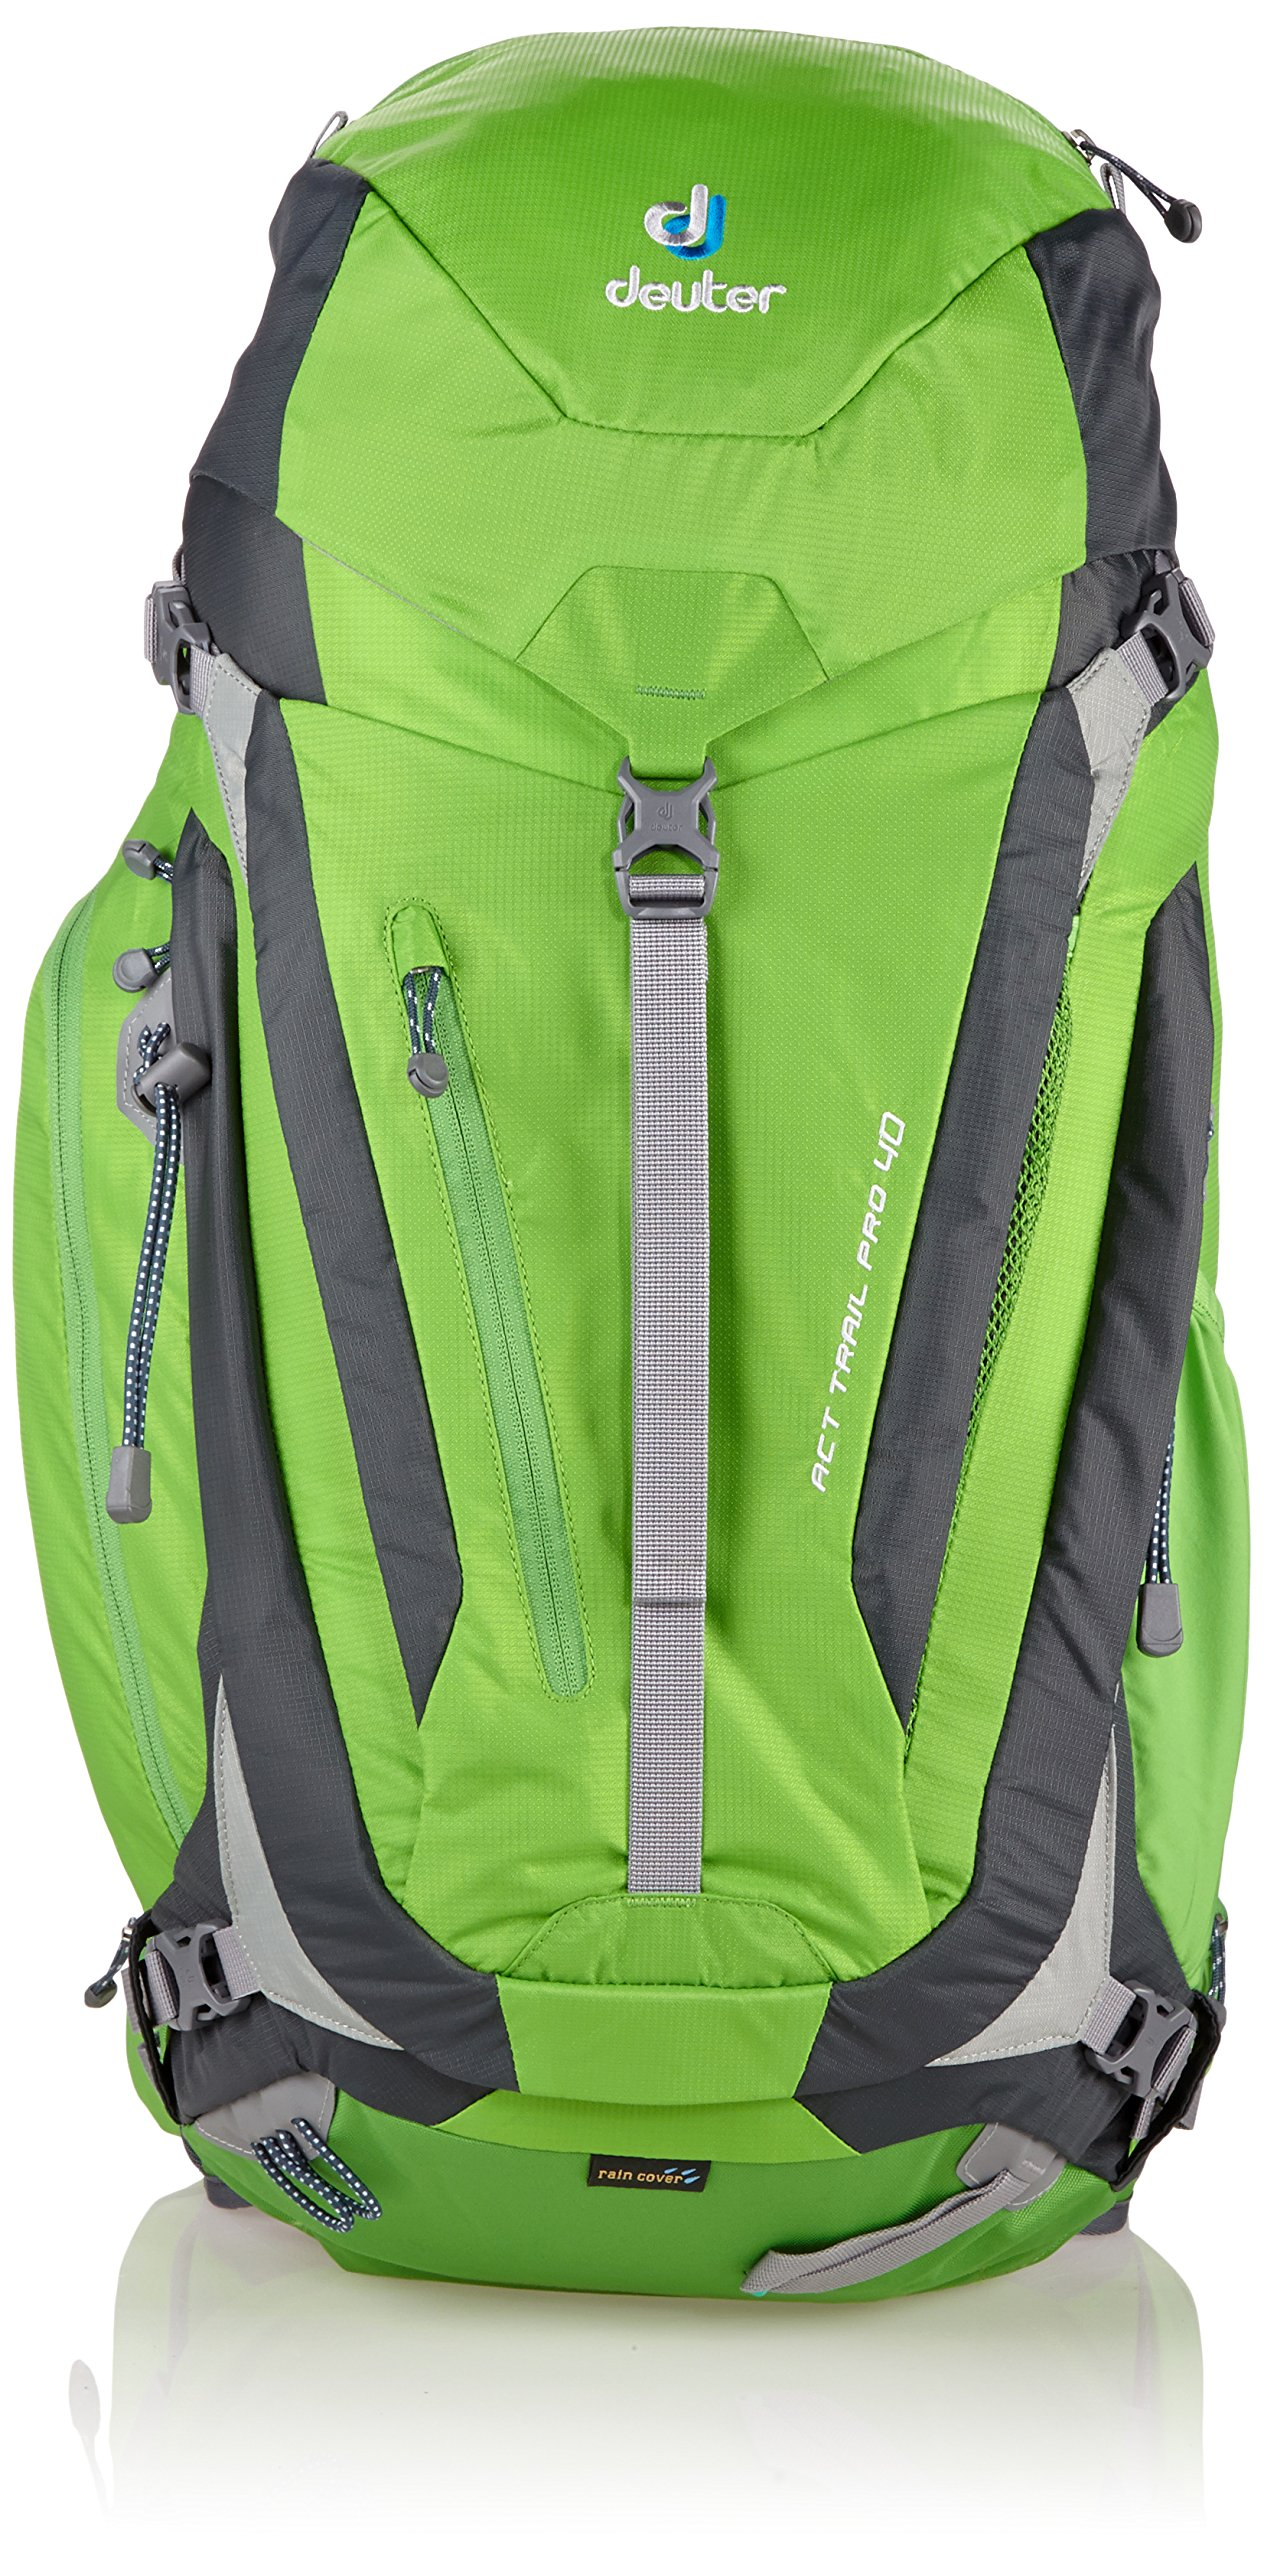 Deuter ACT Trail PRO 40 Hiking Backpack (Spring/Anthracite) by Deuter